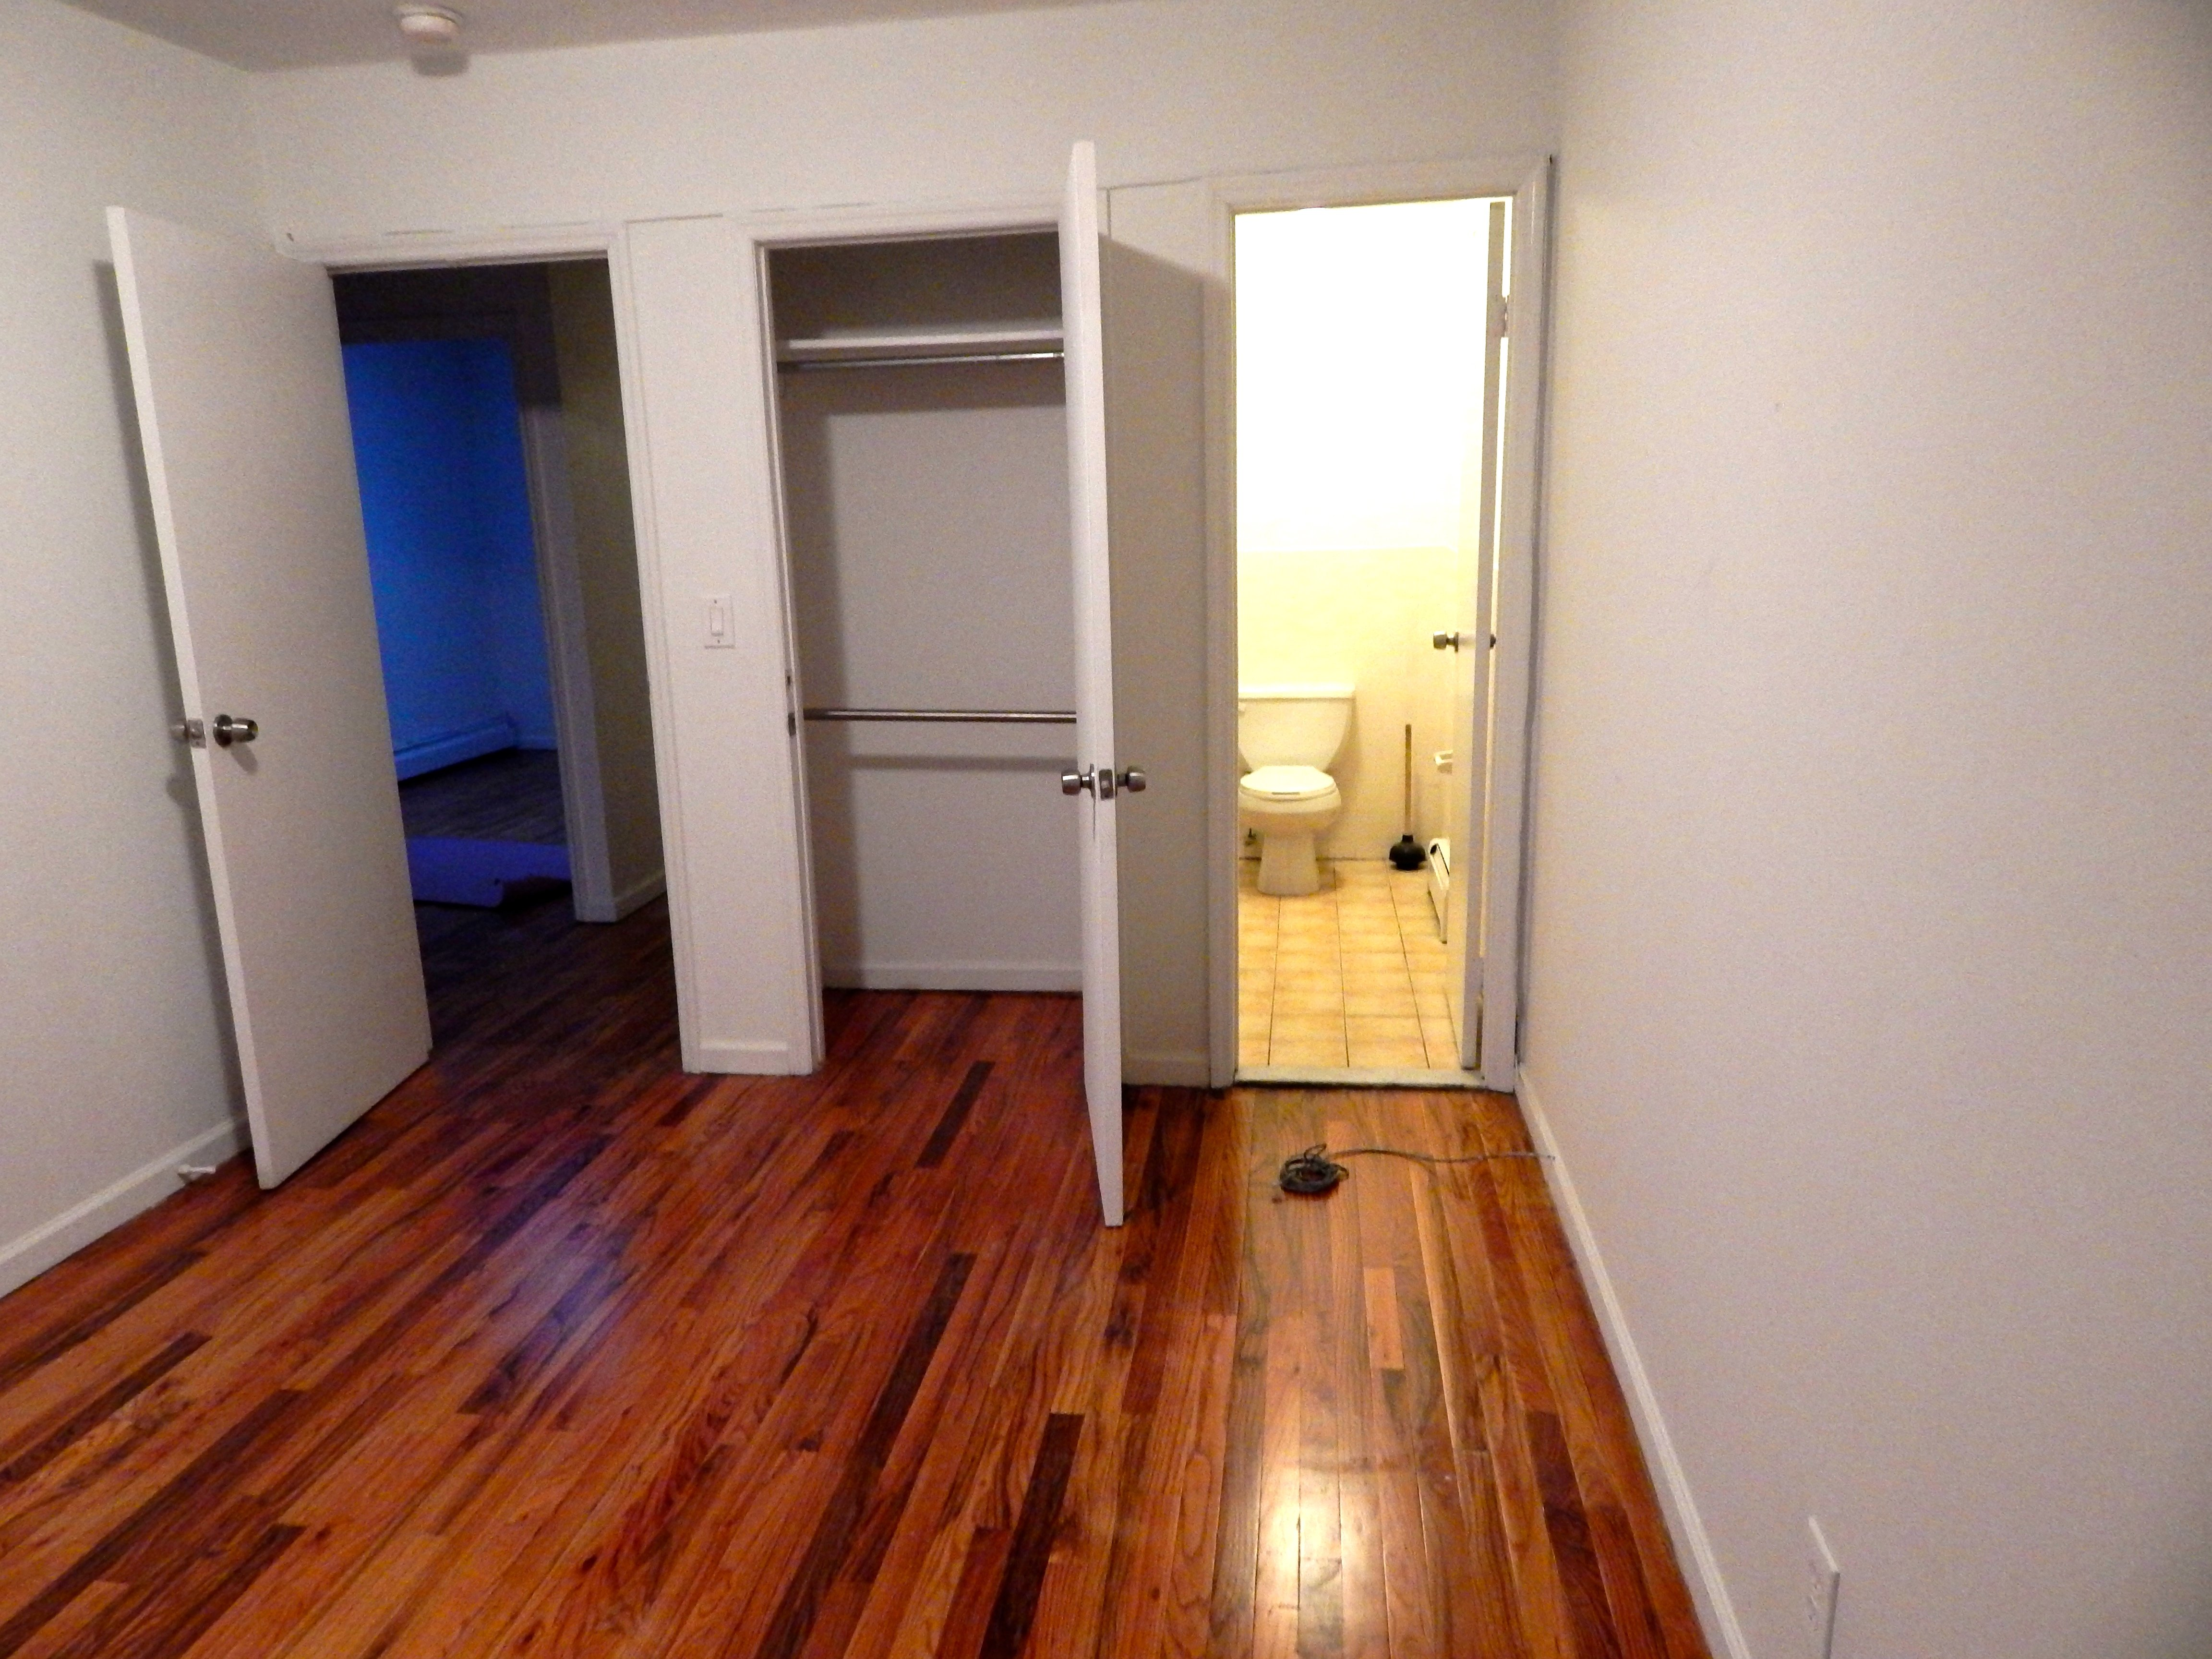 Ashford st 3br apt for rent in east new york brooklyn crg3129 for 3 bedroom apartments for rent in brooklyn ny